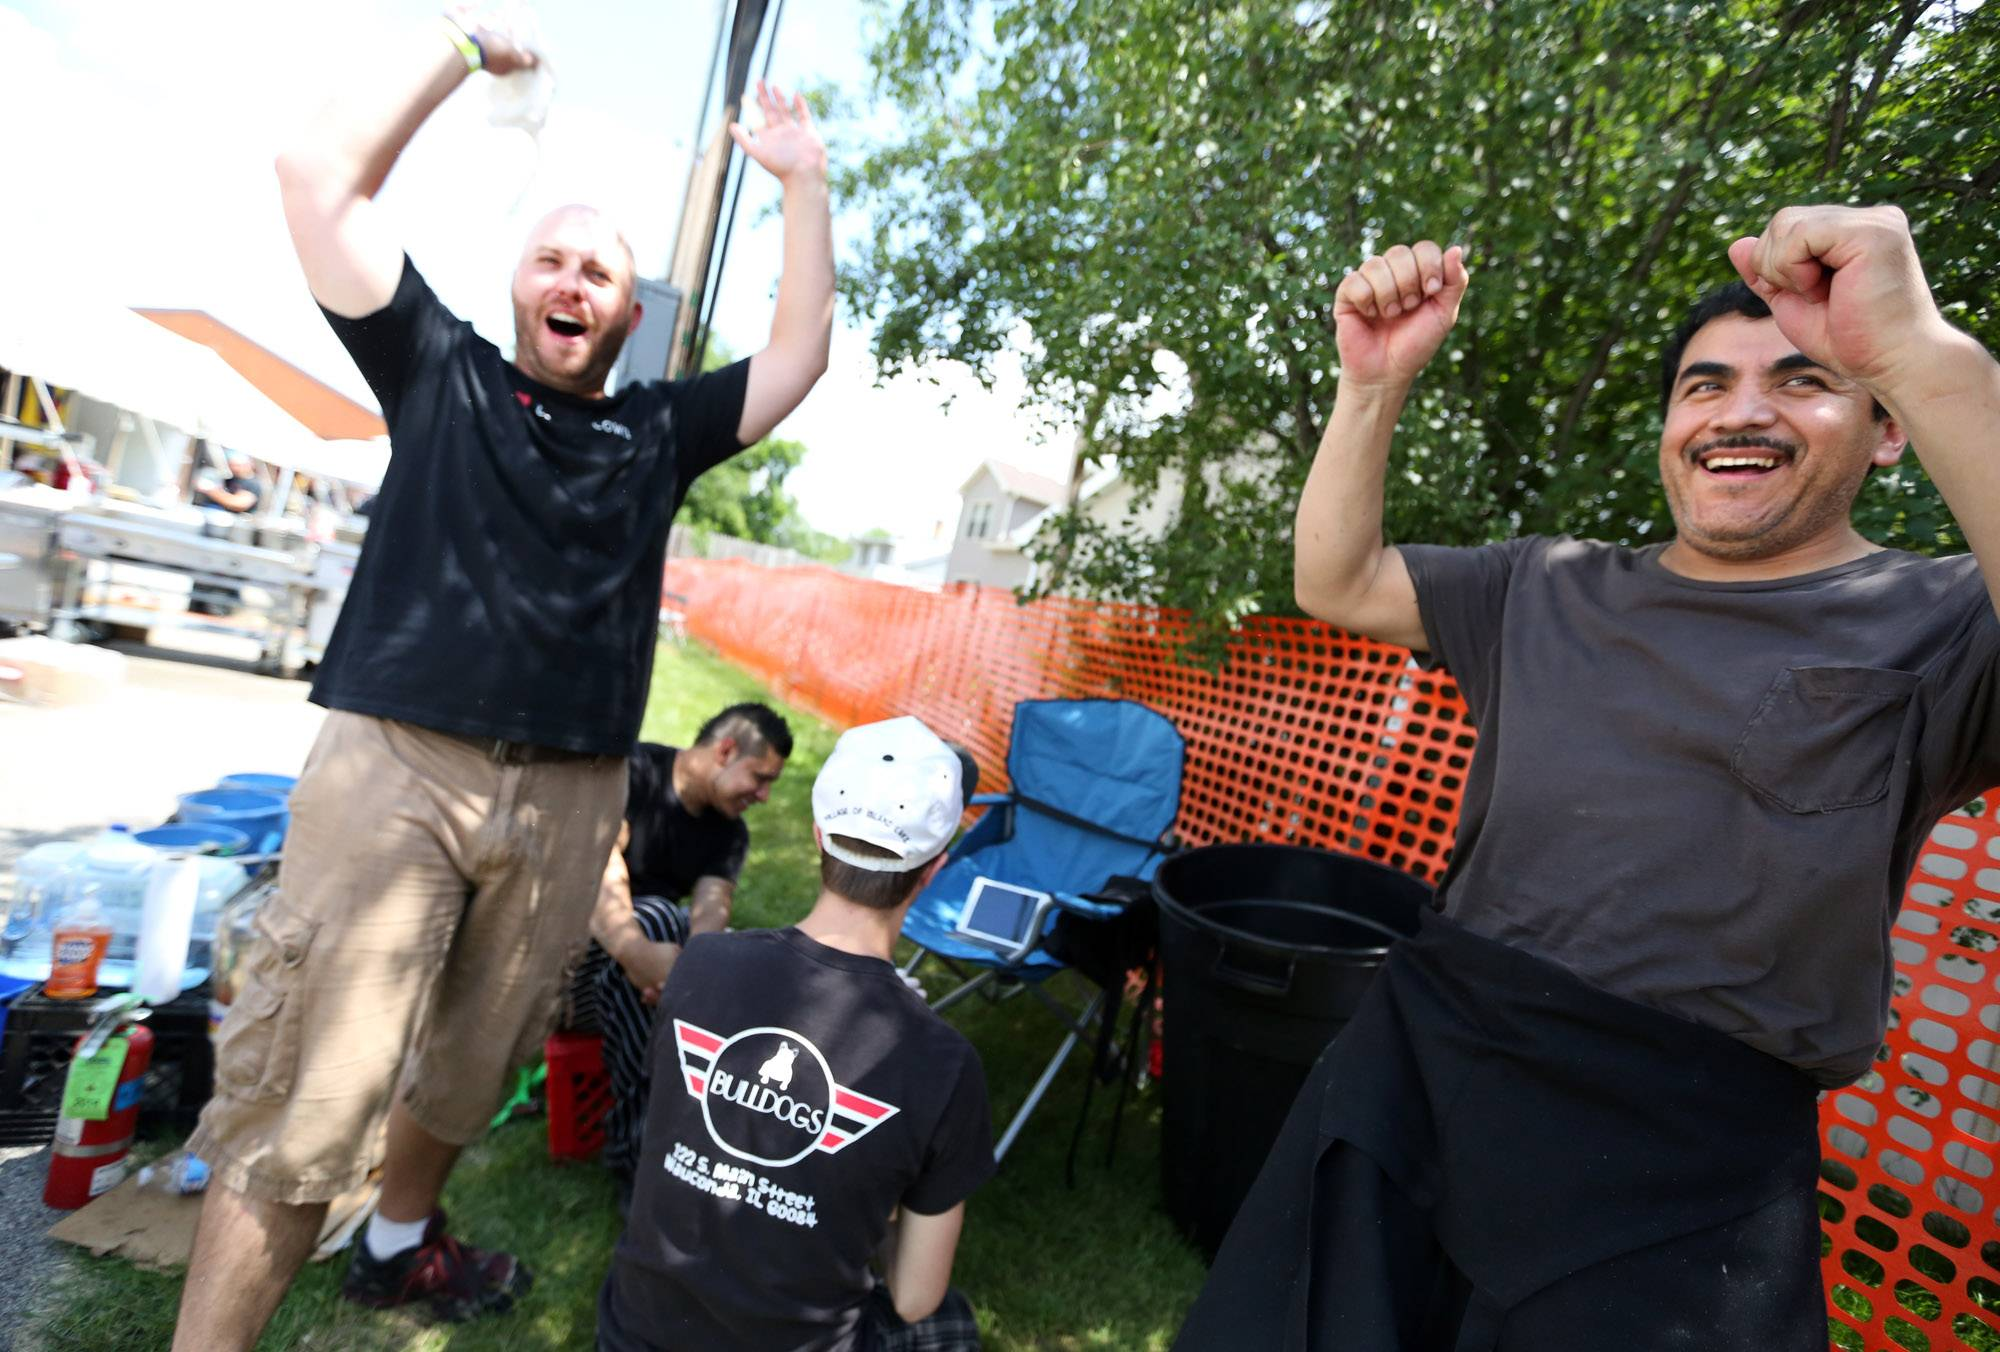 Patrick Ringel, manager of Bulldogs Grill, left, and chef Martin Velazquez celebrate a penalty kick goal by Chile against Brazil in the World Cup while watching the game on an iPad during a break behind their food stand at Wauconda Fest on Saturday.